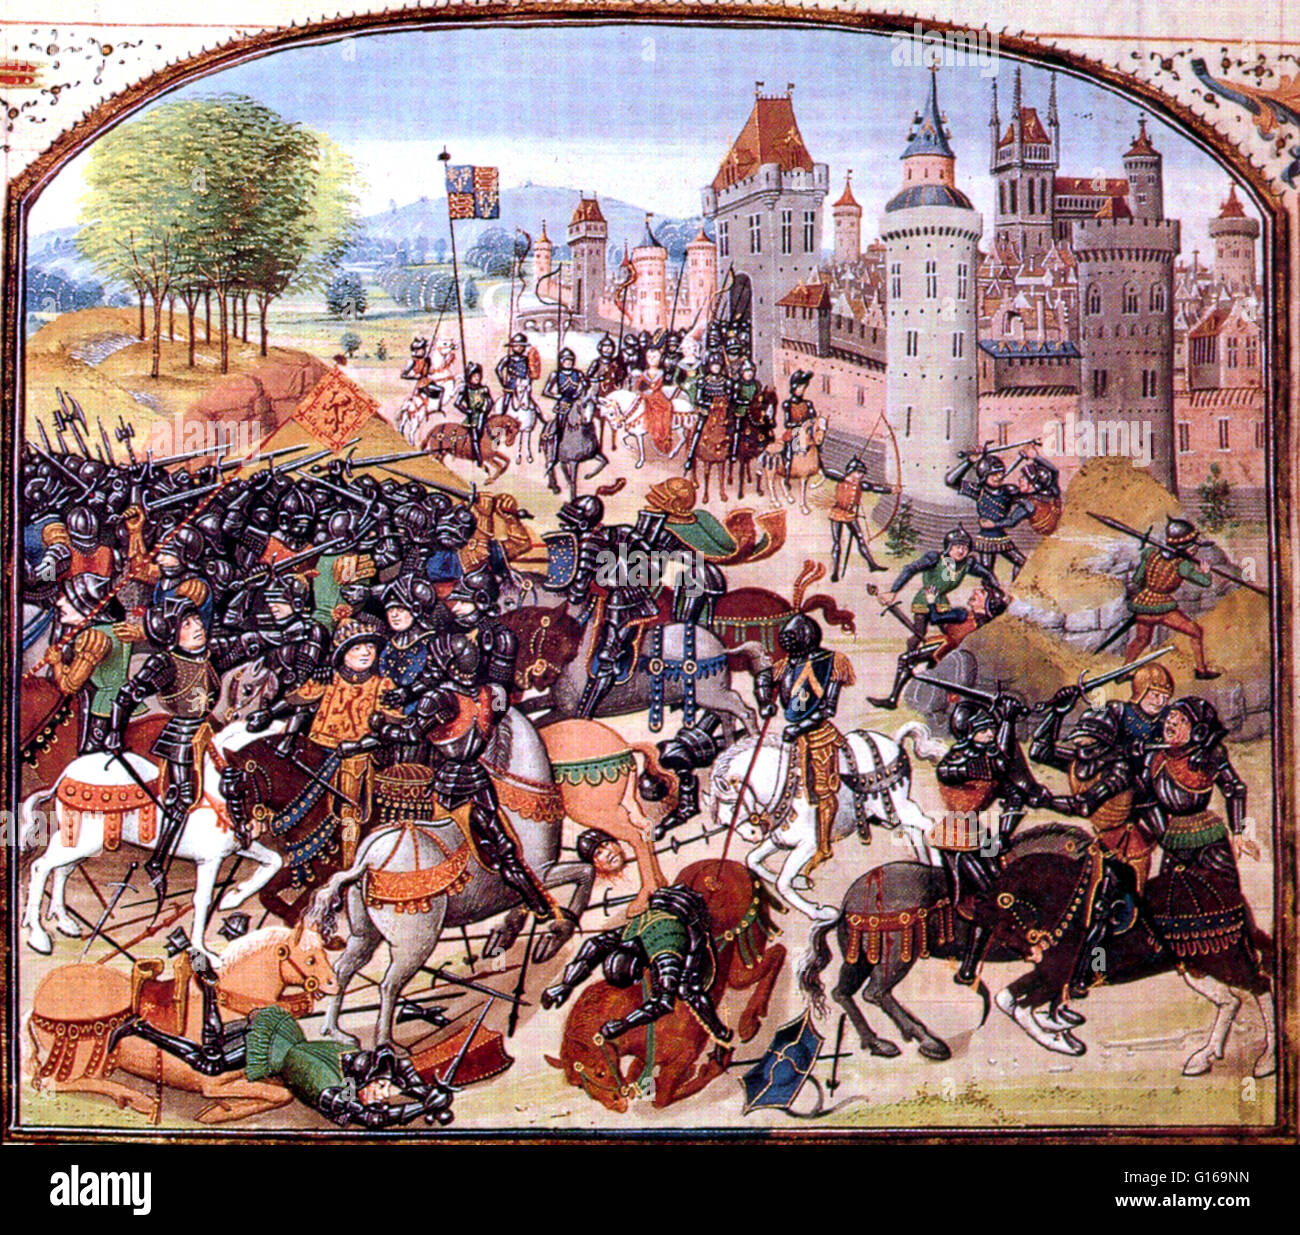 In 1346, England was embroiled in the Hundred Years' War with France. In  order to divert his enemy Philip VI of France appealed to David II of  Scotland to ...